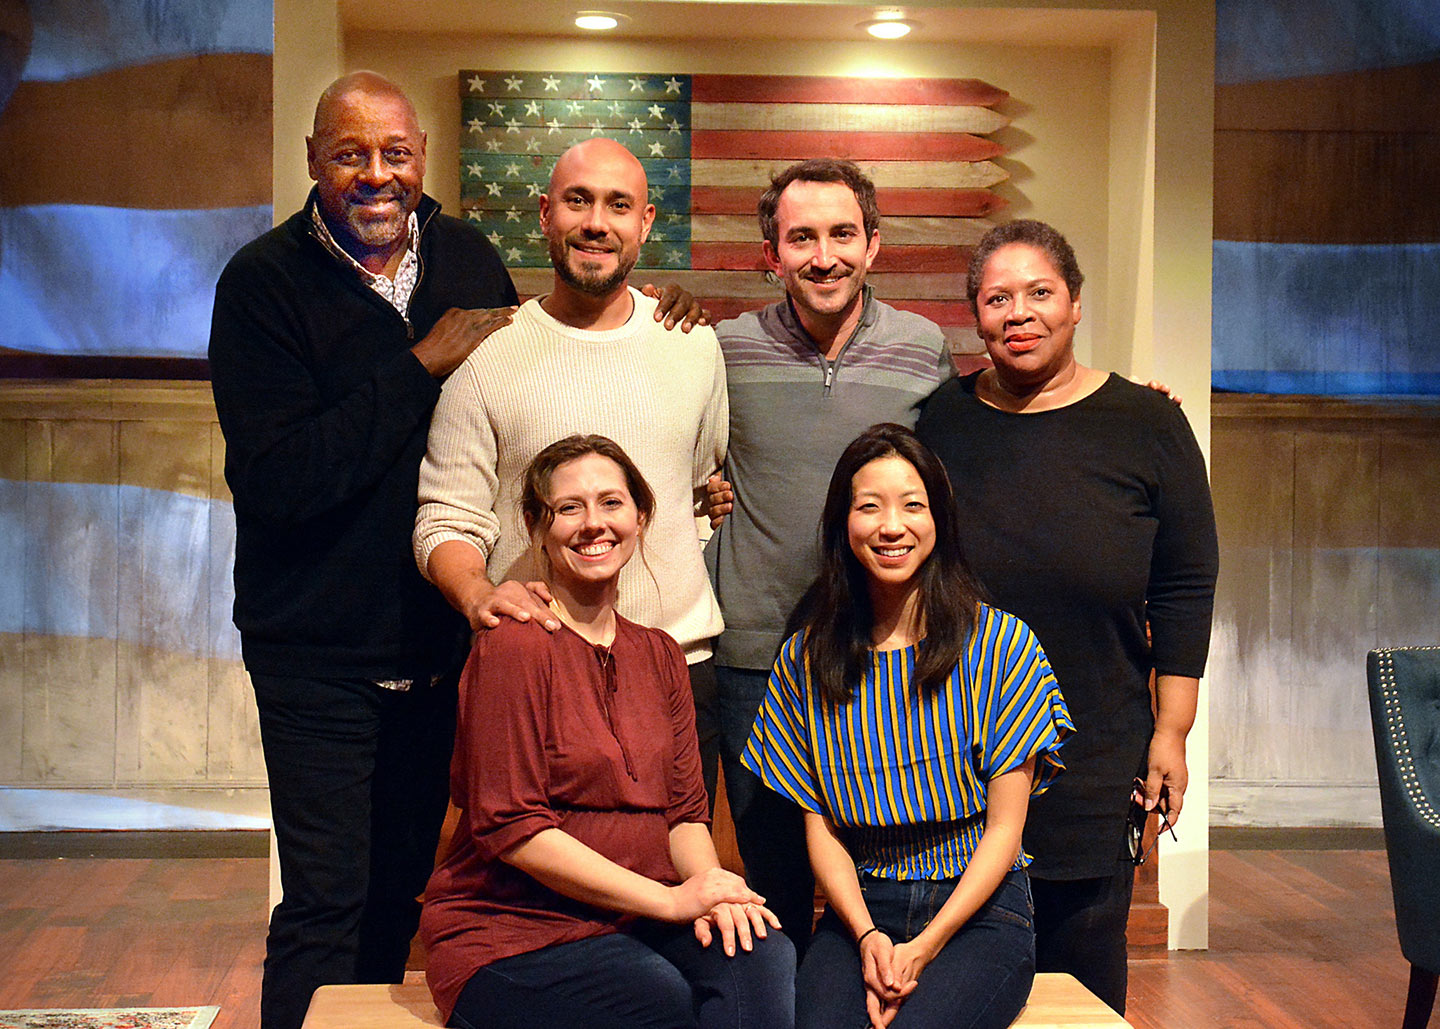 Clockwise from top left: Director Michael A. Shepperd, actors Andres M. Baggs and Clayton Farris, writer Penelope Lowder and actors Allison Blaize and Jenny Soo.   Ed Krieger